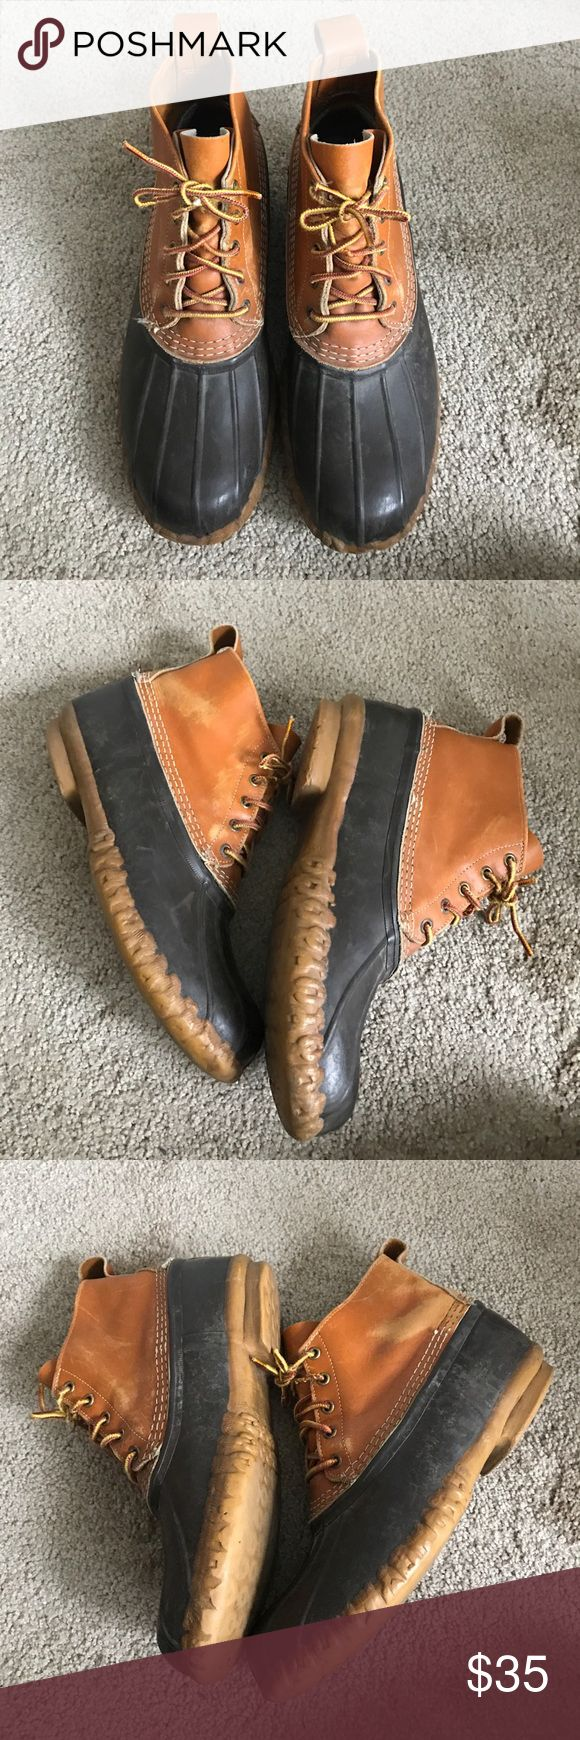 L.L. Bean boots Men's duck boots in good lightly used condition L.L. Bean Shoes Boots